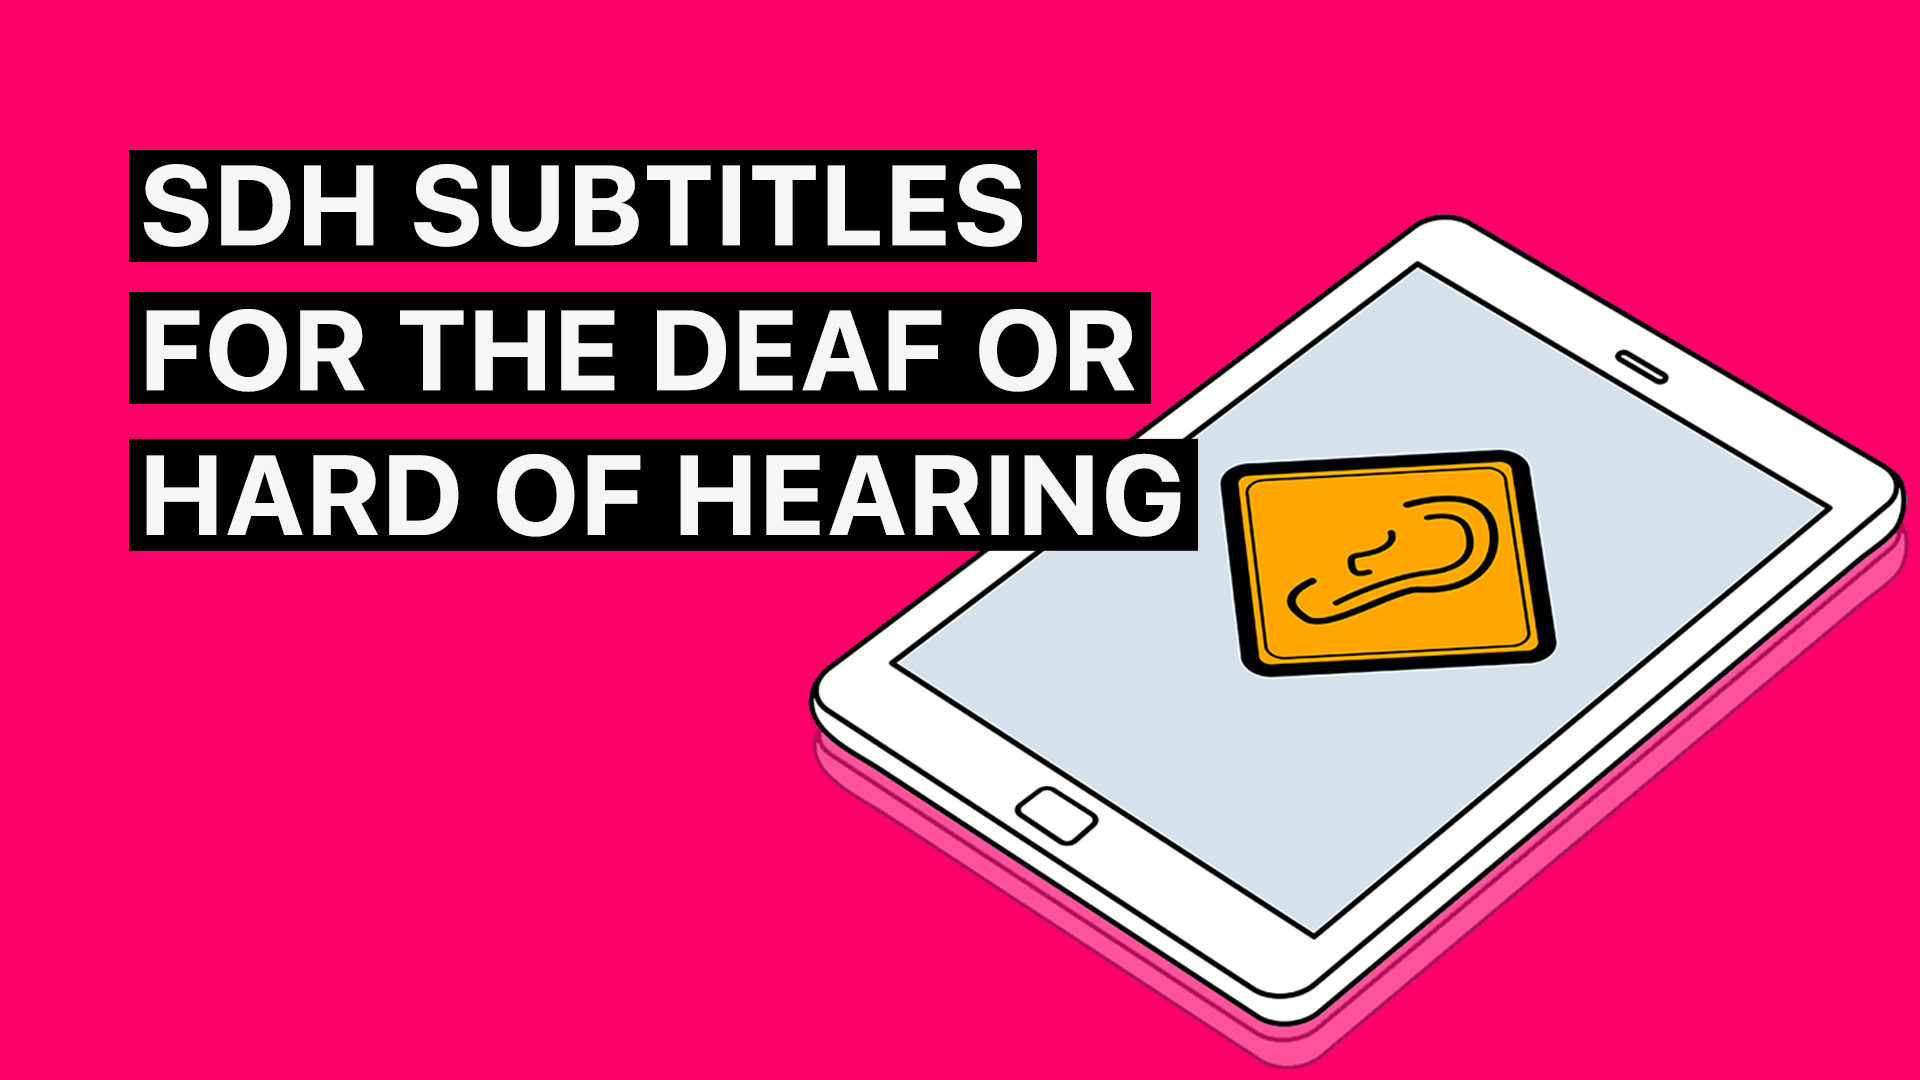 SDH Subtitles: What Exactly Are Subtitles for the Deaf and Hard of Hearing?